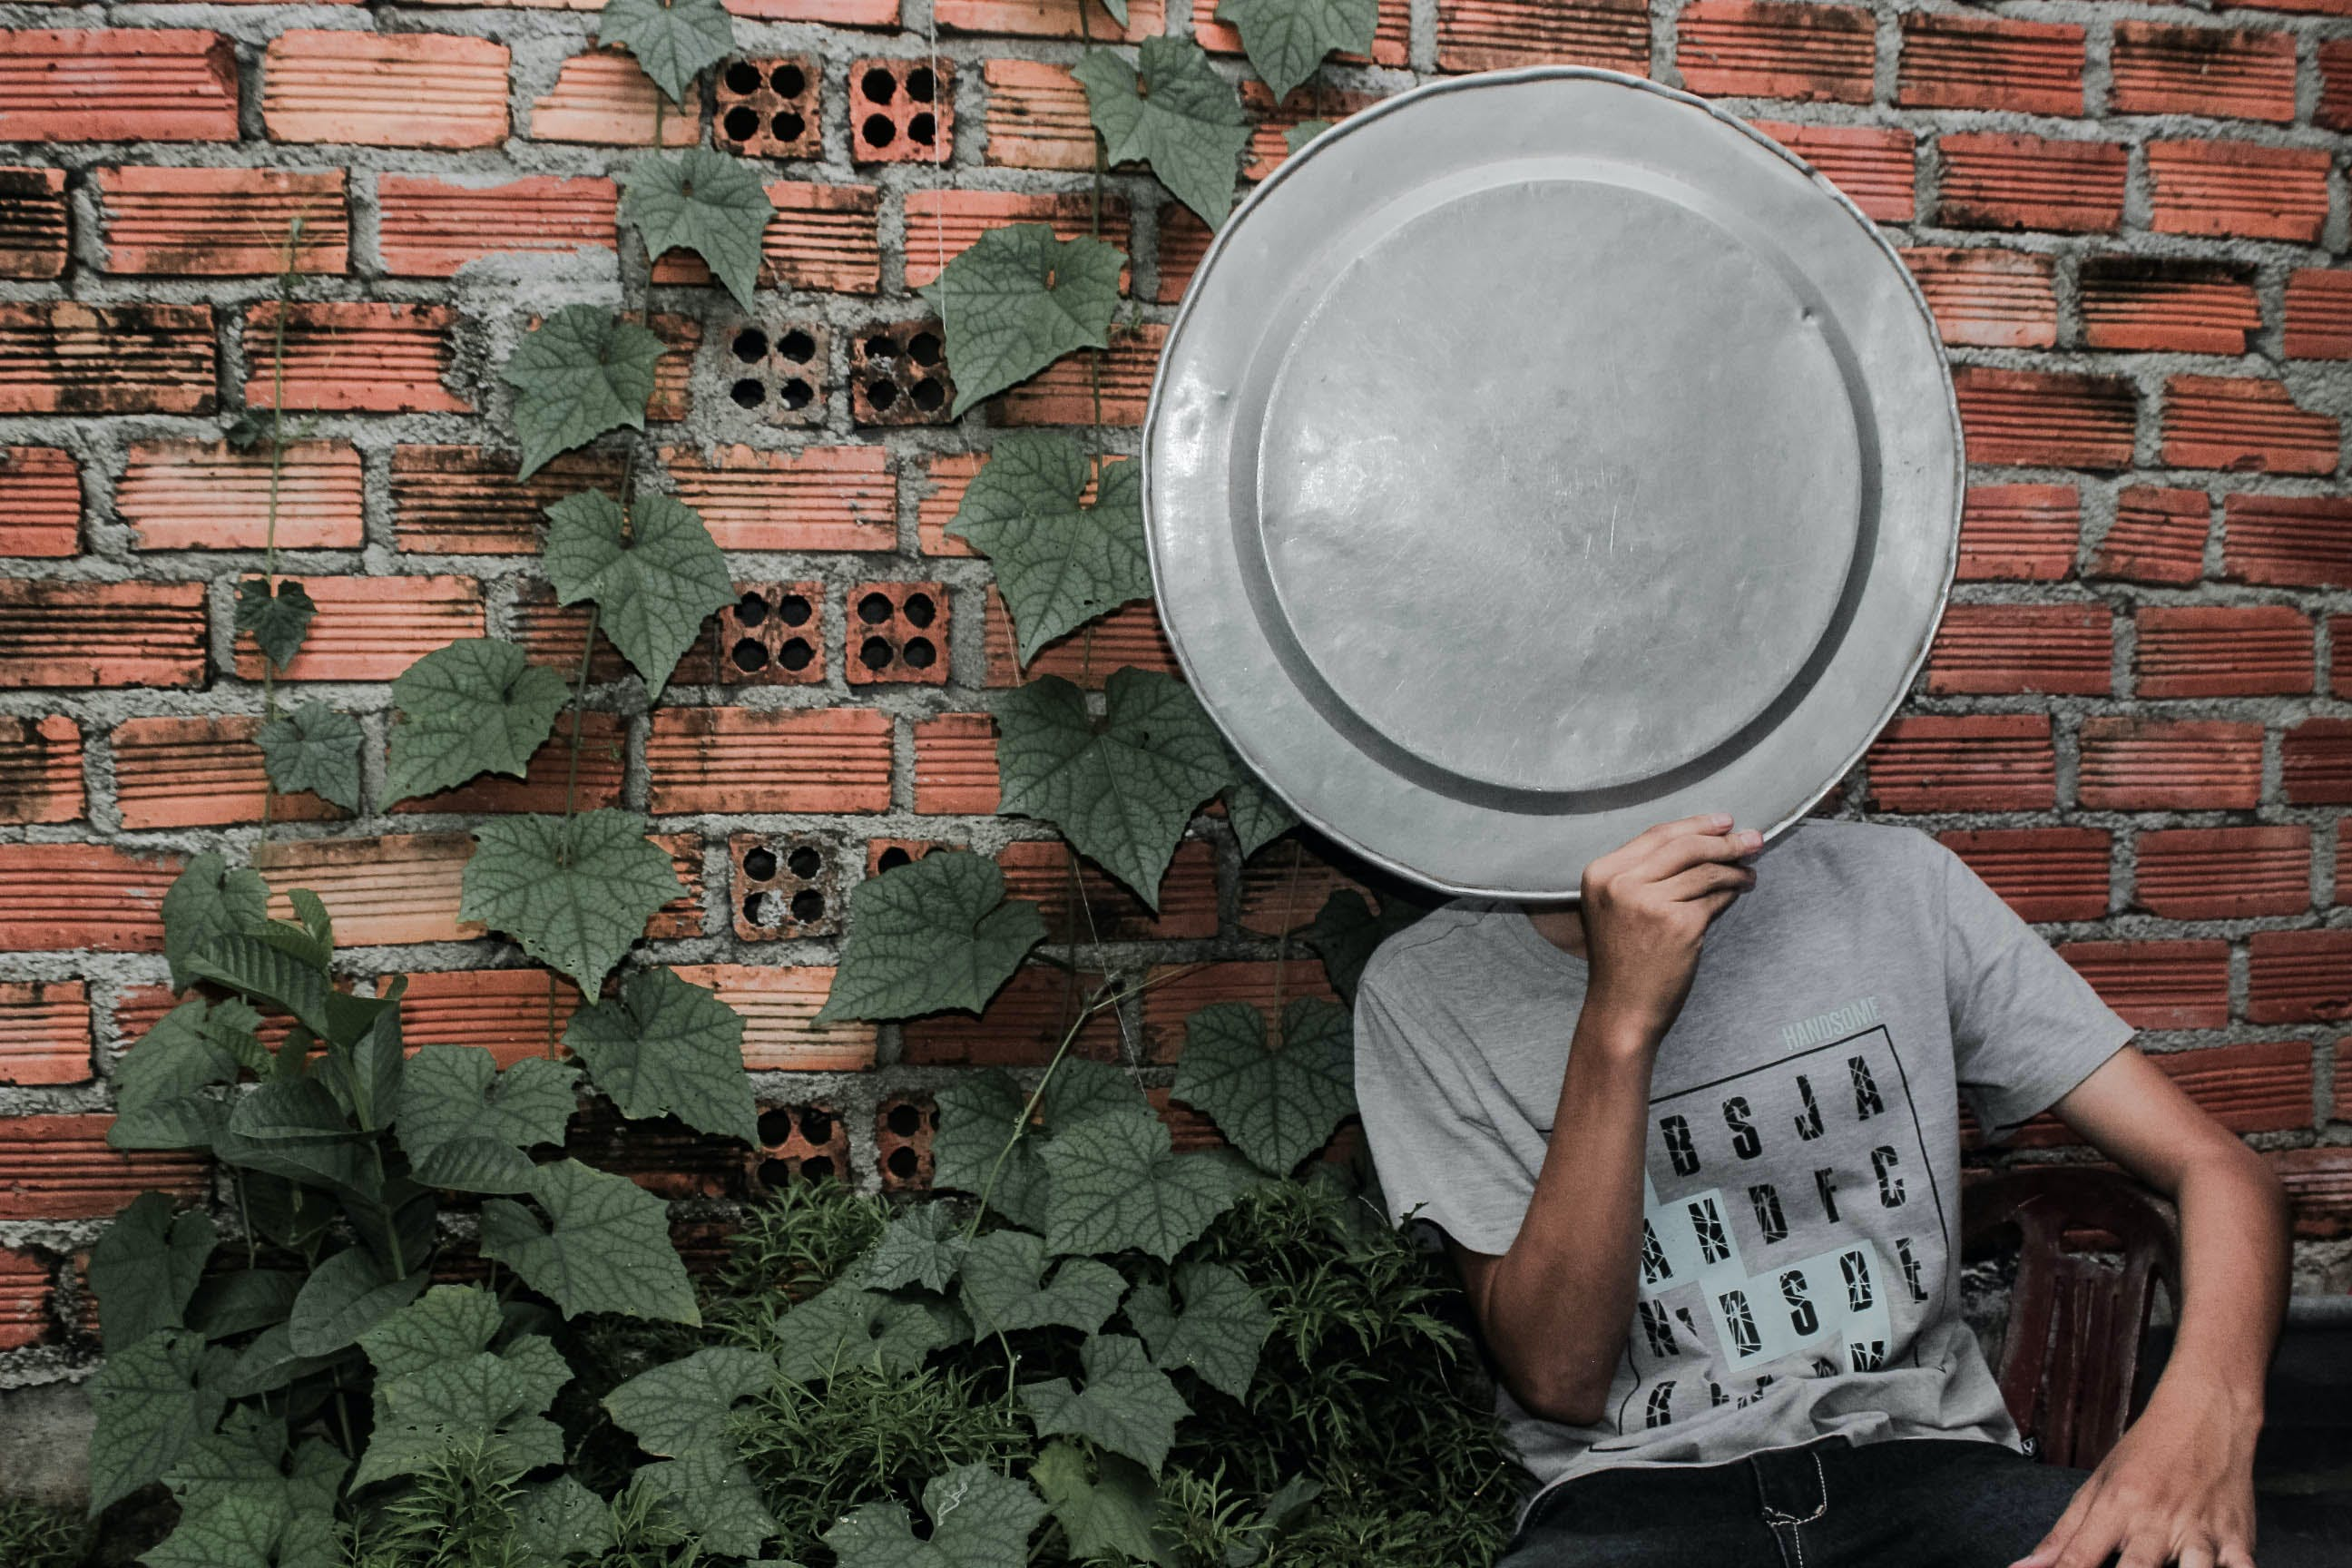 Person Wearing Gray Crew-neck T-shirt holding a tray on the face next to a brick wall